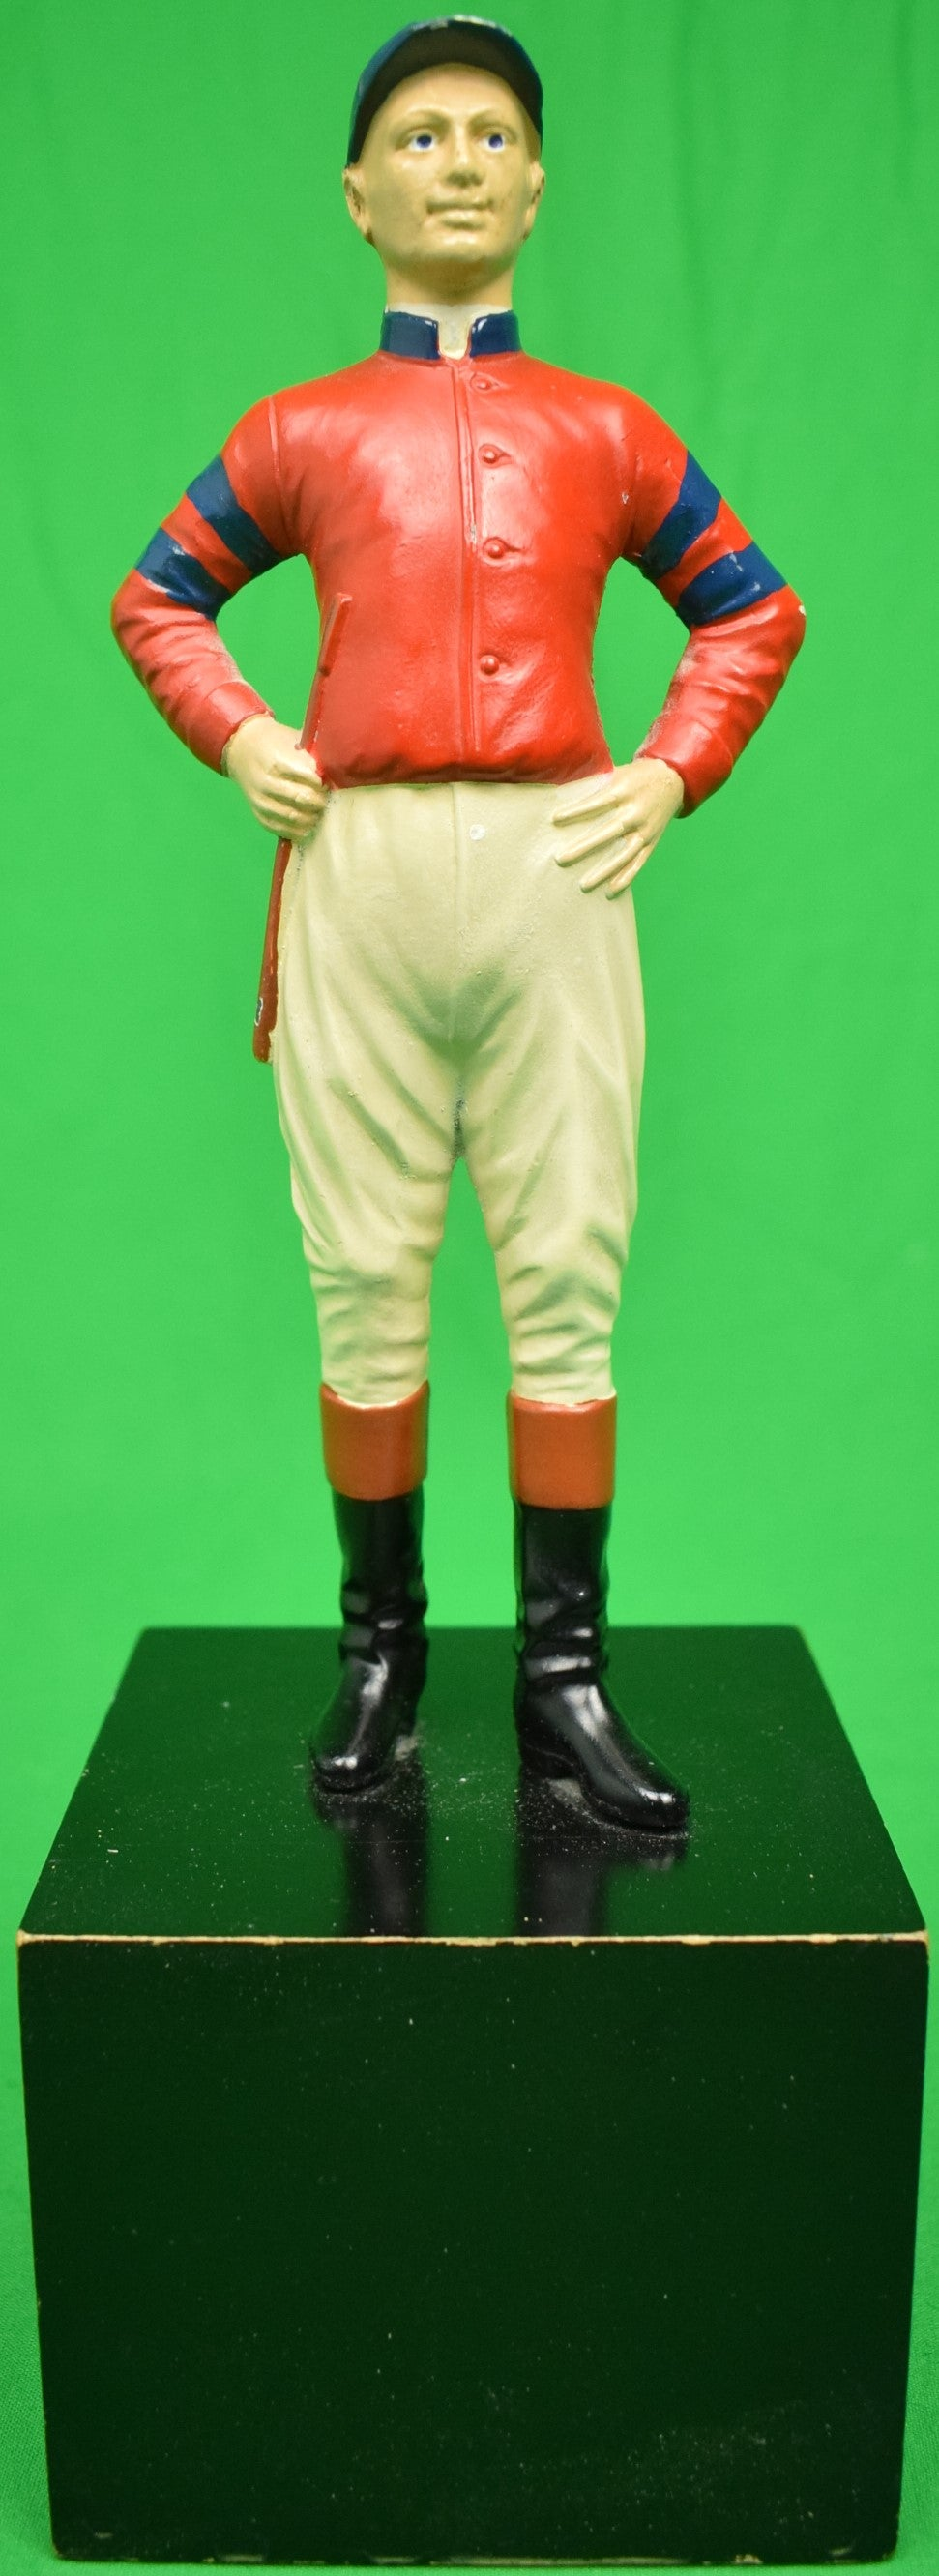 """21"" Club Jockey Bookend"